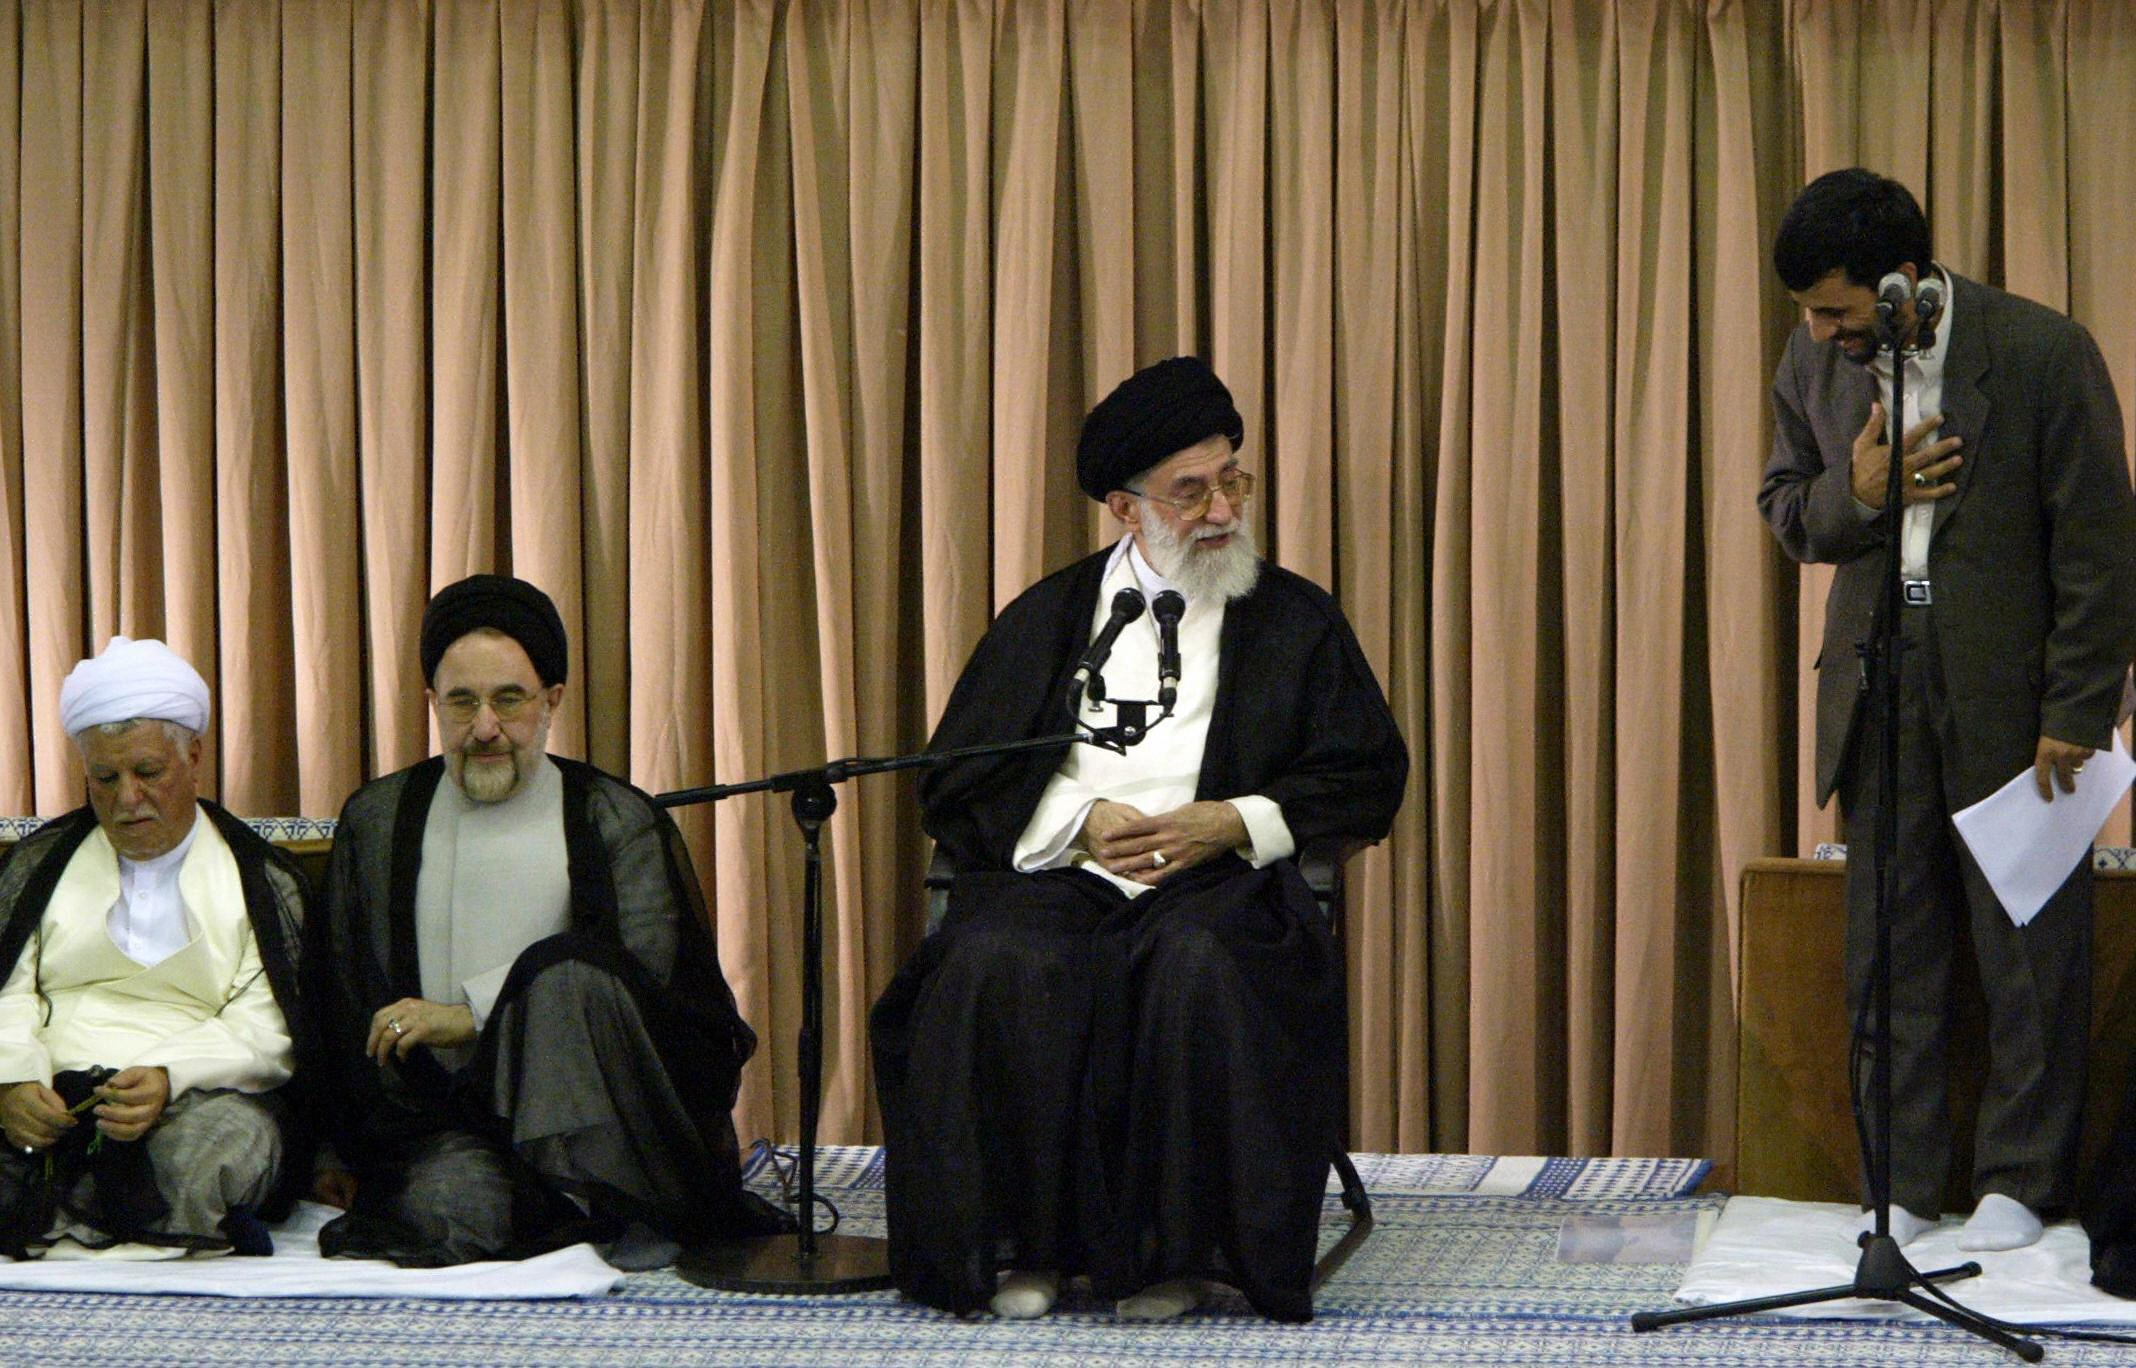 TEHRAN, IRAN: Iran's new President Mahmoud Ahmadinejad, right, Iran's supreme leader Ayatollah Khamenei, center, outgoing President Mohammad Khatami, and former president Ali Akbar Hashami Rafsanjani attend Ahmadinejad's inaugural ceremony in Tehran 03 August 2005. Ahmadinejad appealed for an end to weapons of mass destruction in the world, a day after the West issued sharp warnings to Tehran over its threatened violation of a deal suspending its nuclear programme. AFP PHOTO/ATTA KENARE (Photo credit should read ATTA KENARE/AFP/Getty Images)